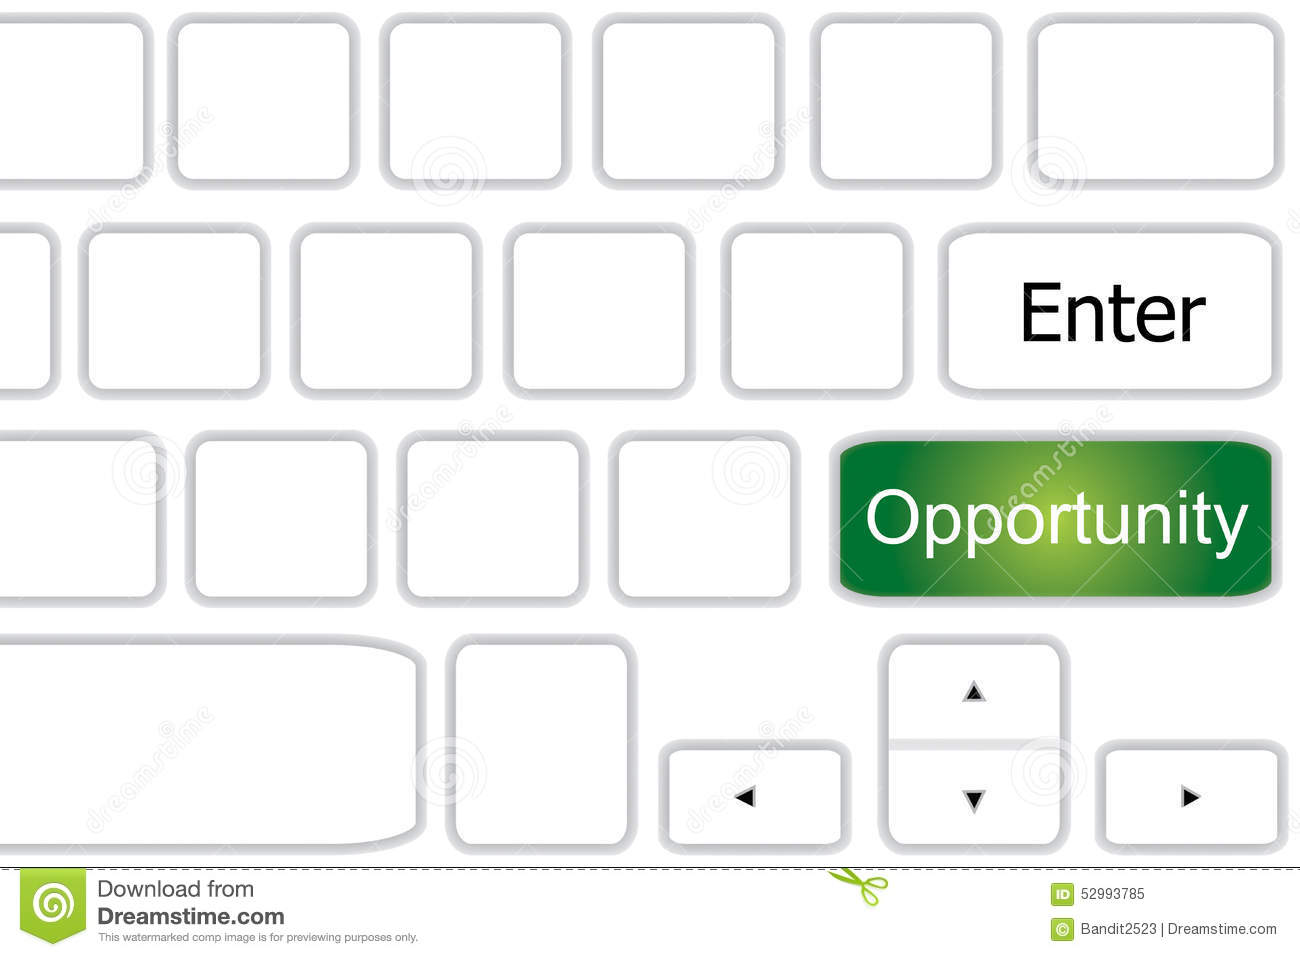 hight resolution of diagram of computer keyboard with opportunity on green key under enter with white background